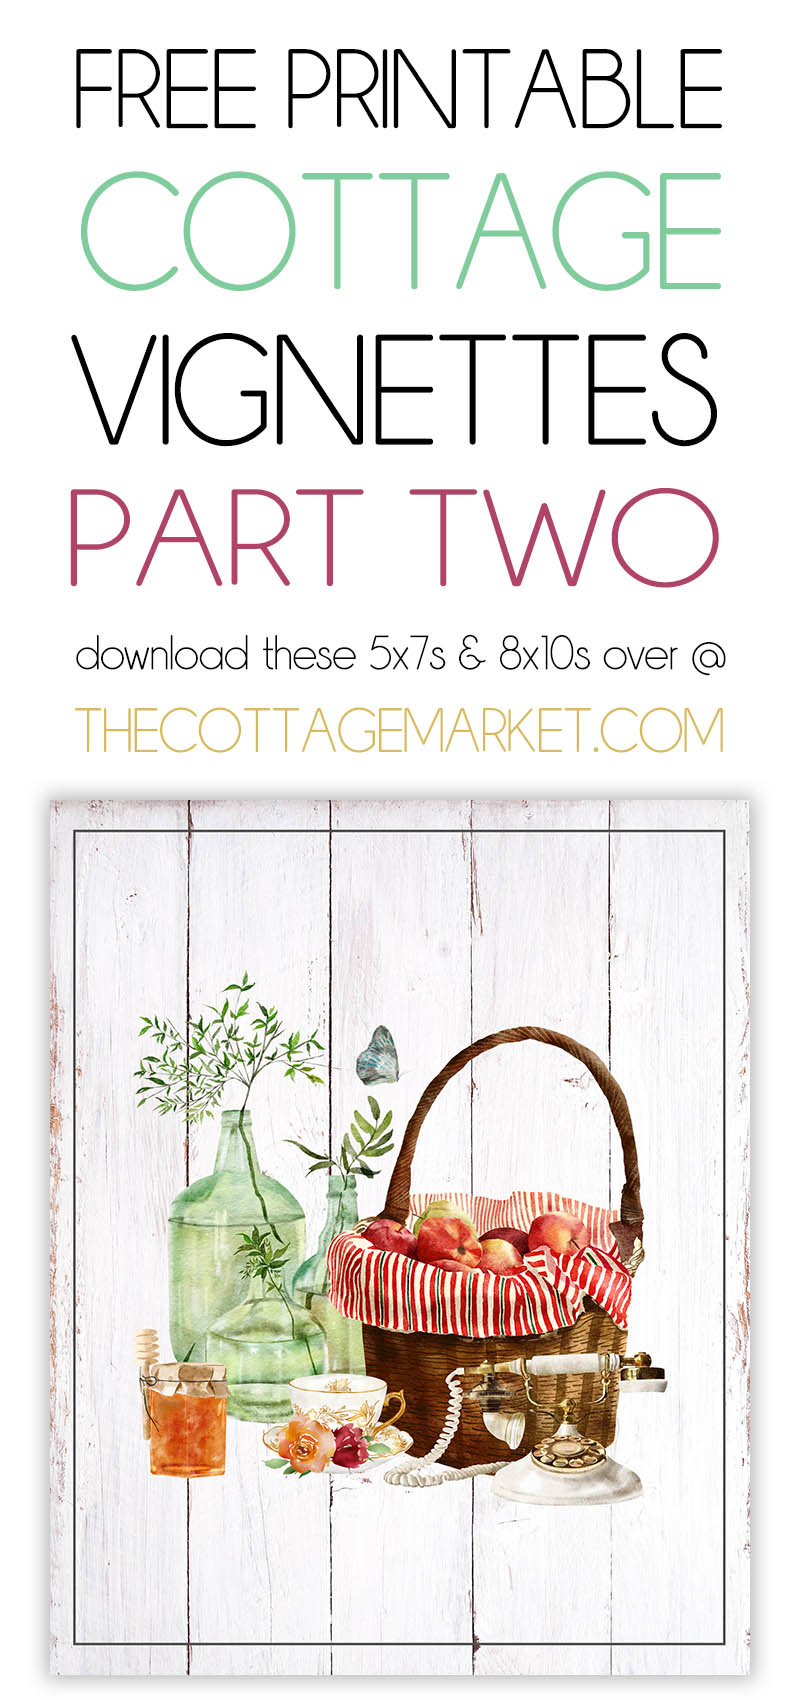 These Free Printable Cottage Vignettes Part Two are going to add a touch of Charm to your Home!